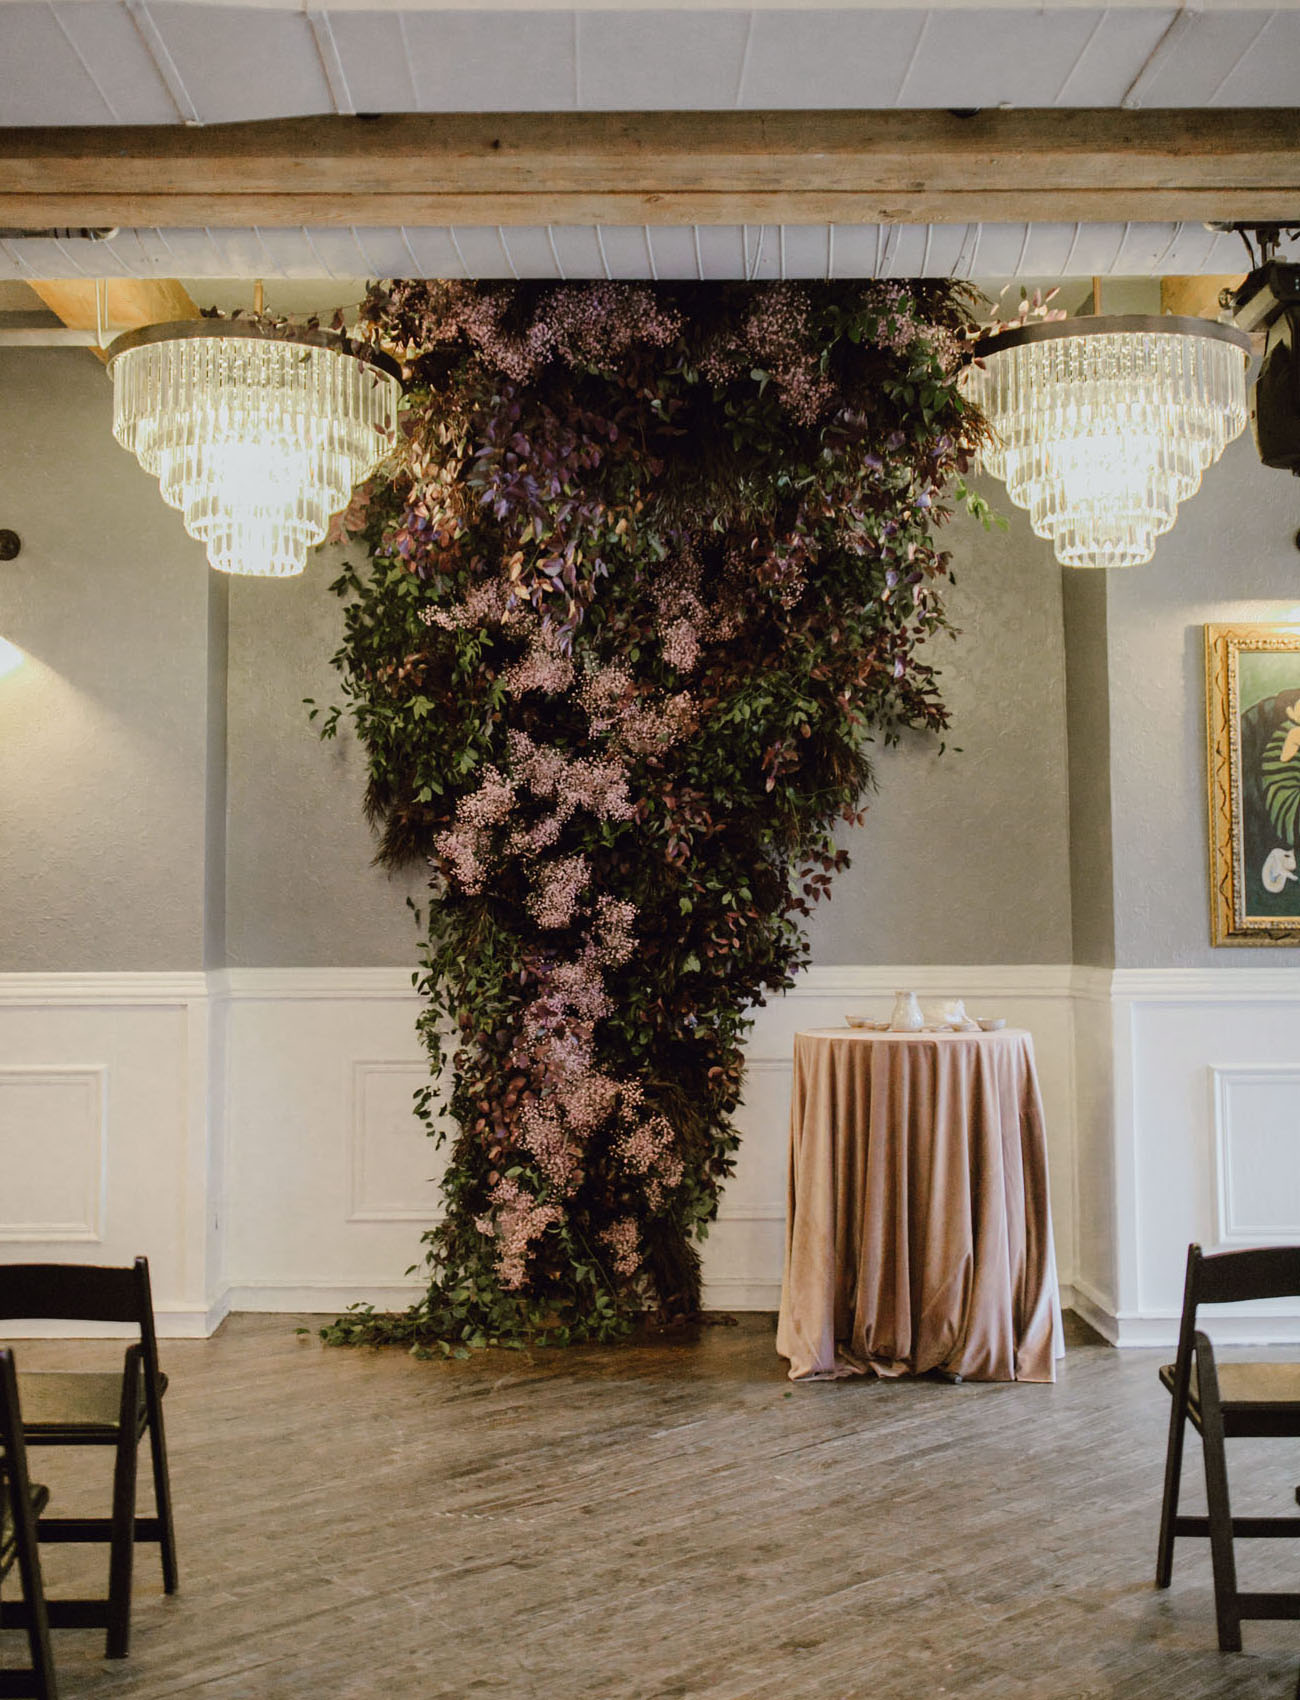 There was a moody and refined floral wedding altar inside